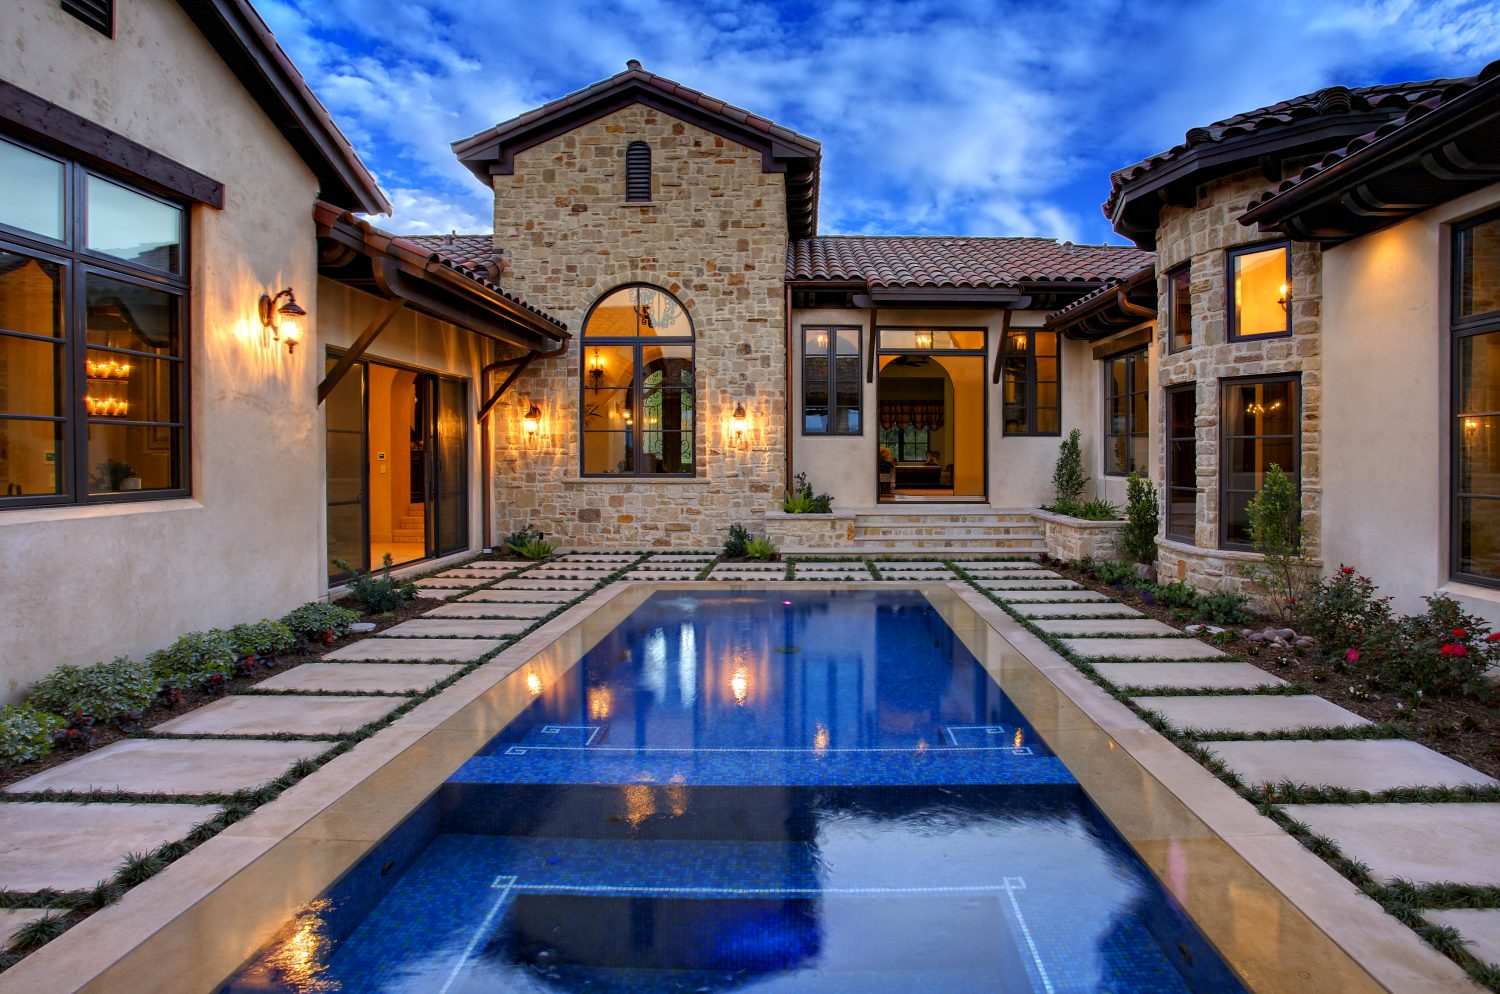 Architecture Home Courtyard retreat pool